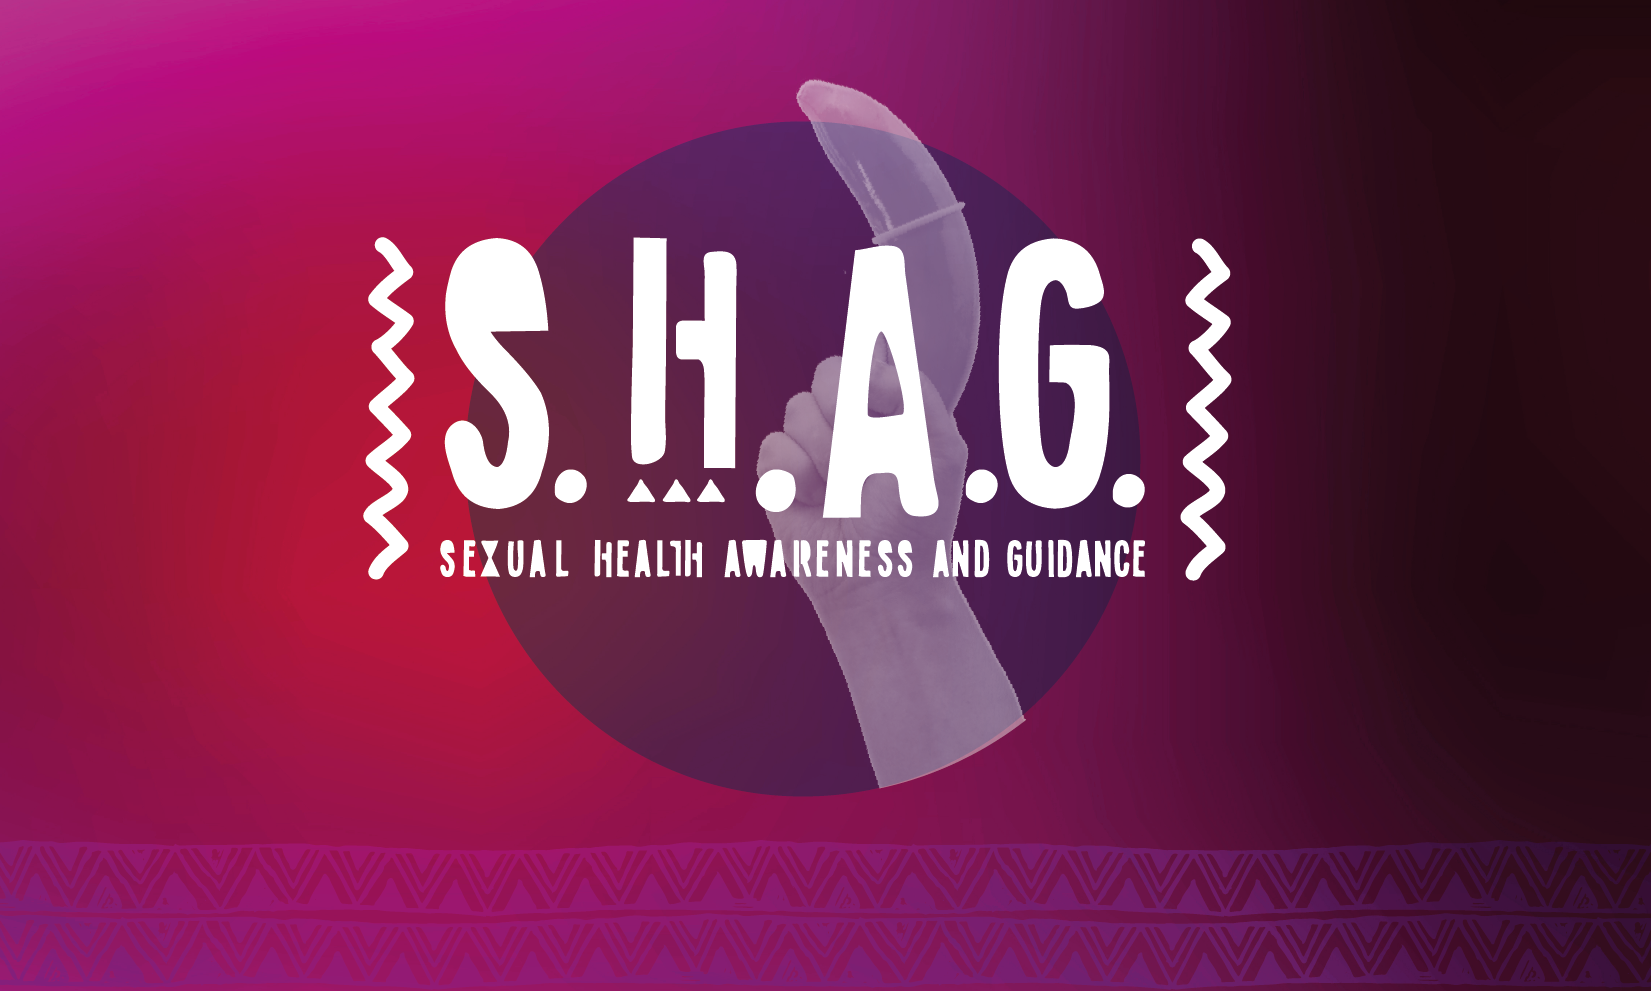 SHAG - Sexual Health Awareness and Guidance logo